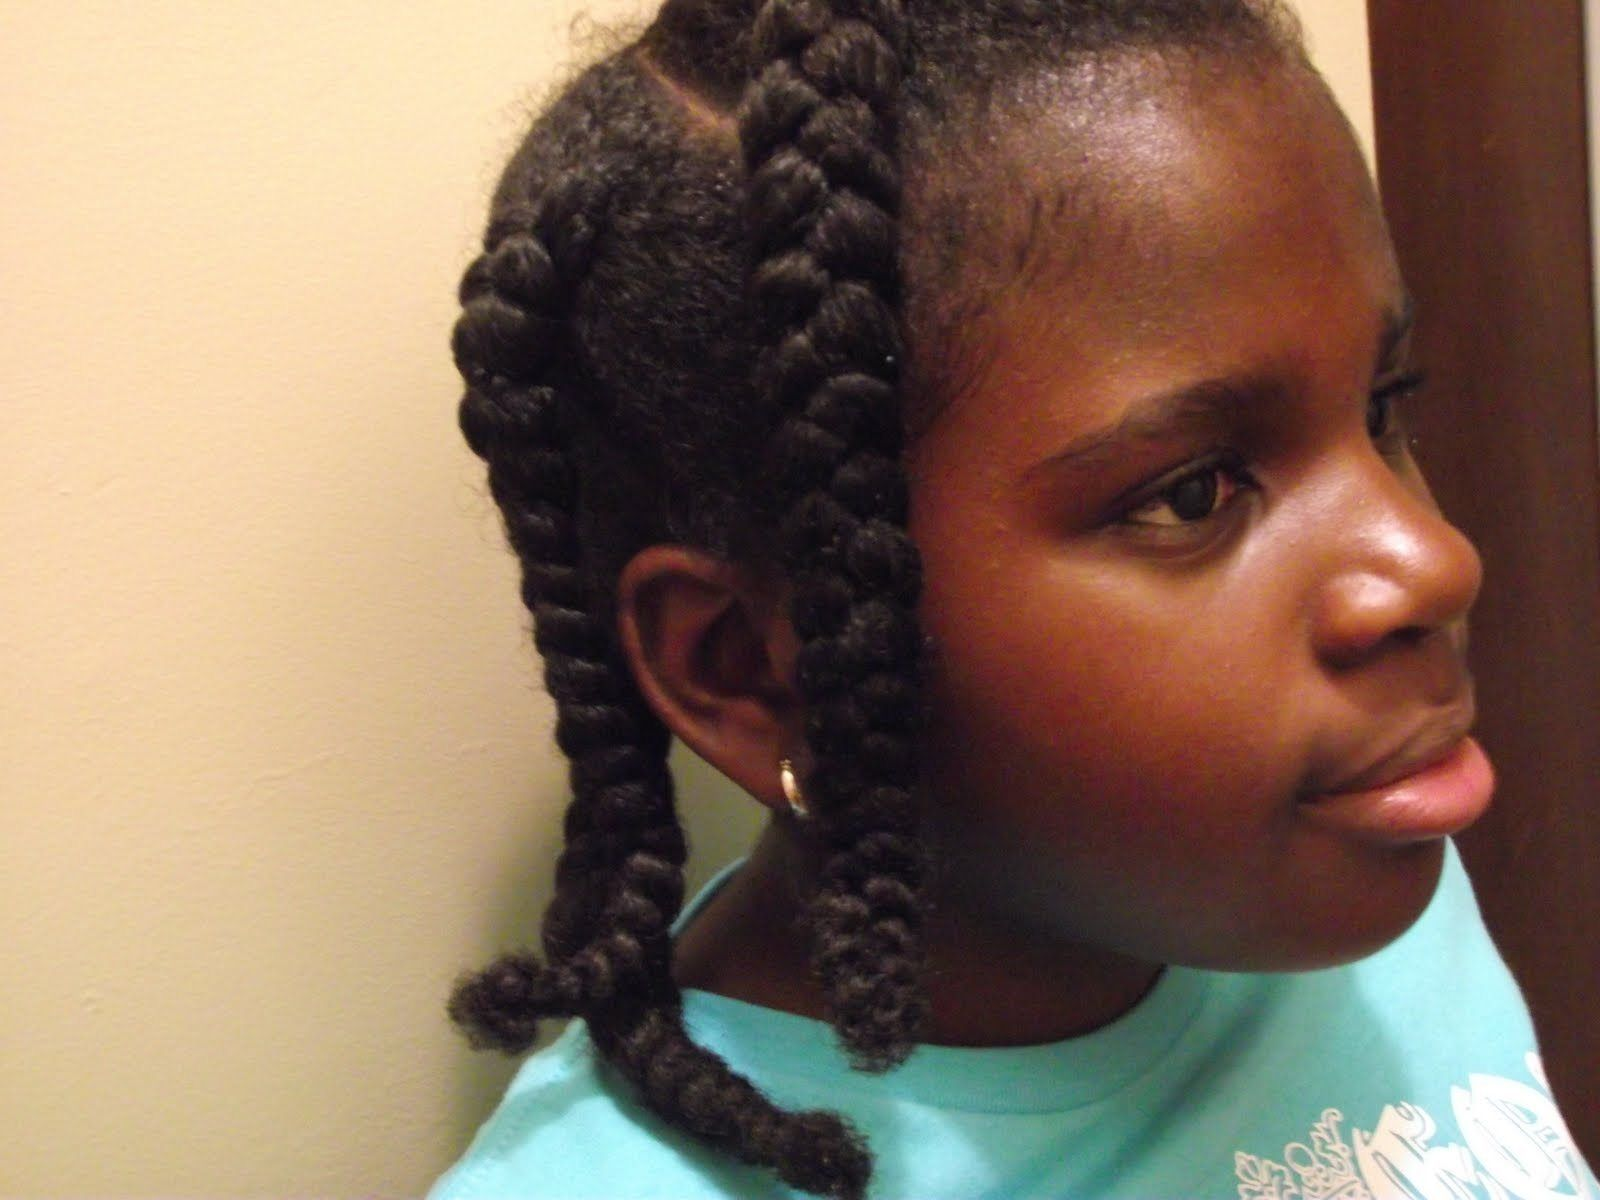 hairstyles for afro-american girl #afrohairstyle #cutehairstyle